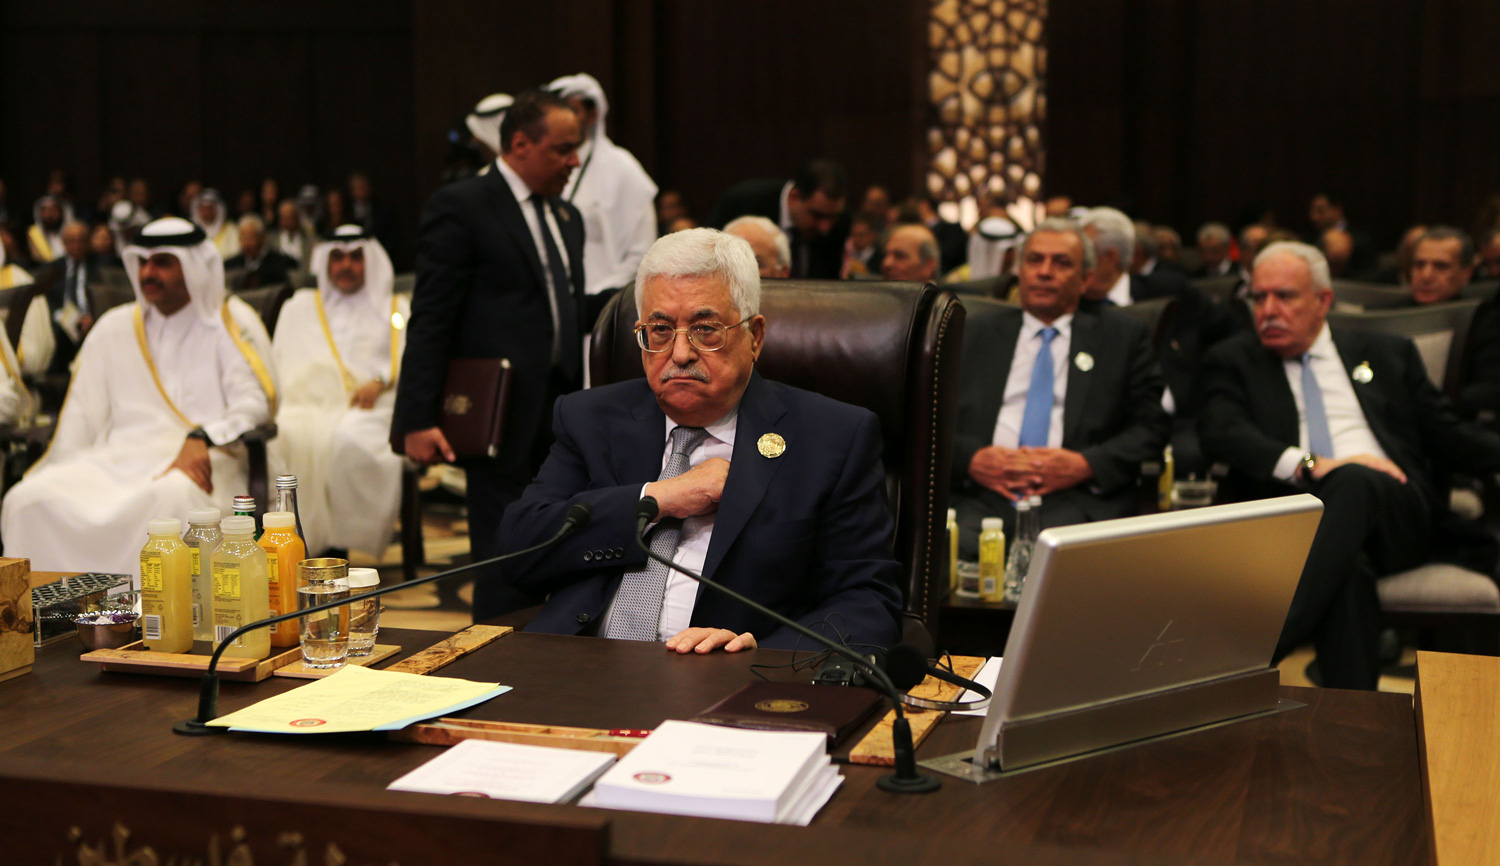 Mahmoud Abbas at an Arab League summit in Jordan on March 29, 2017. Jordan Pix/ Getty Images.